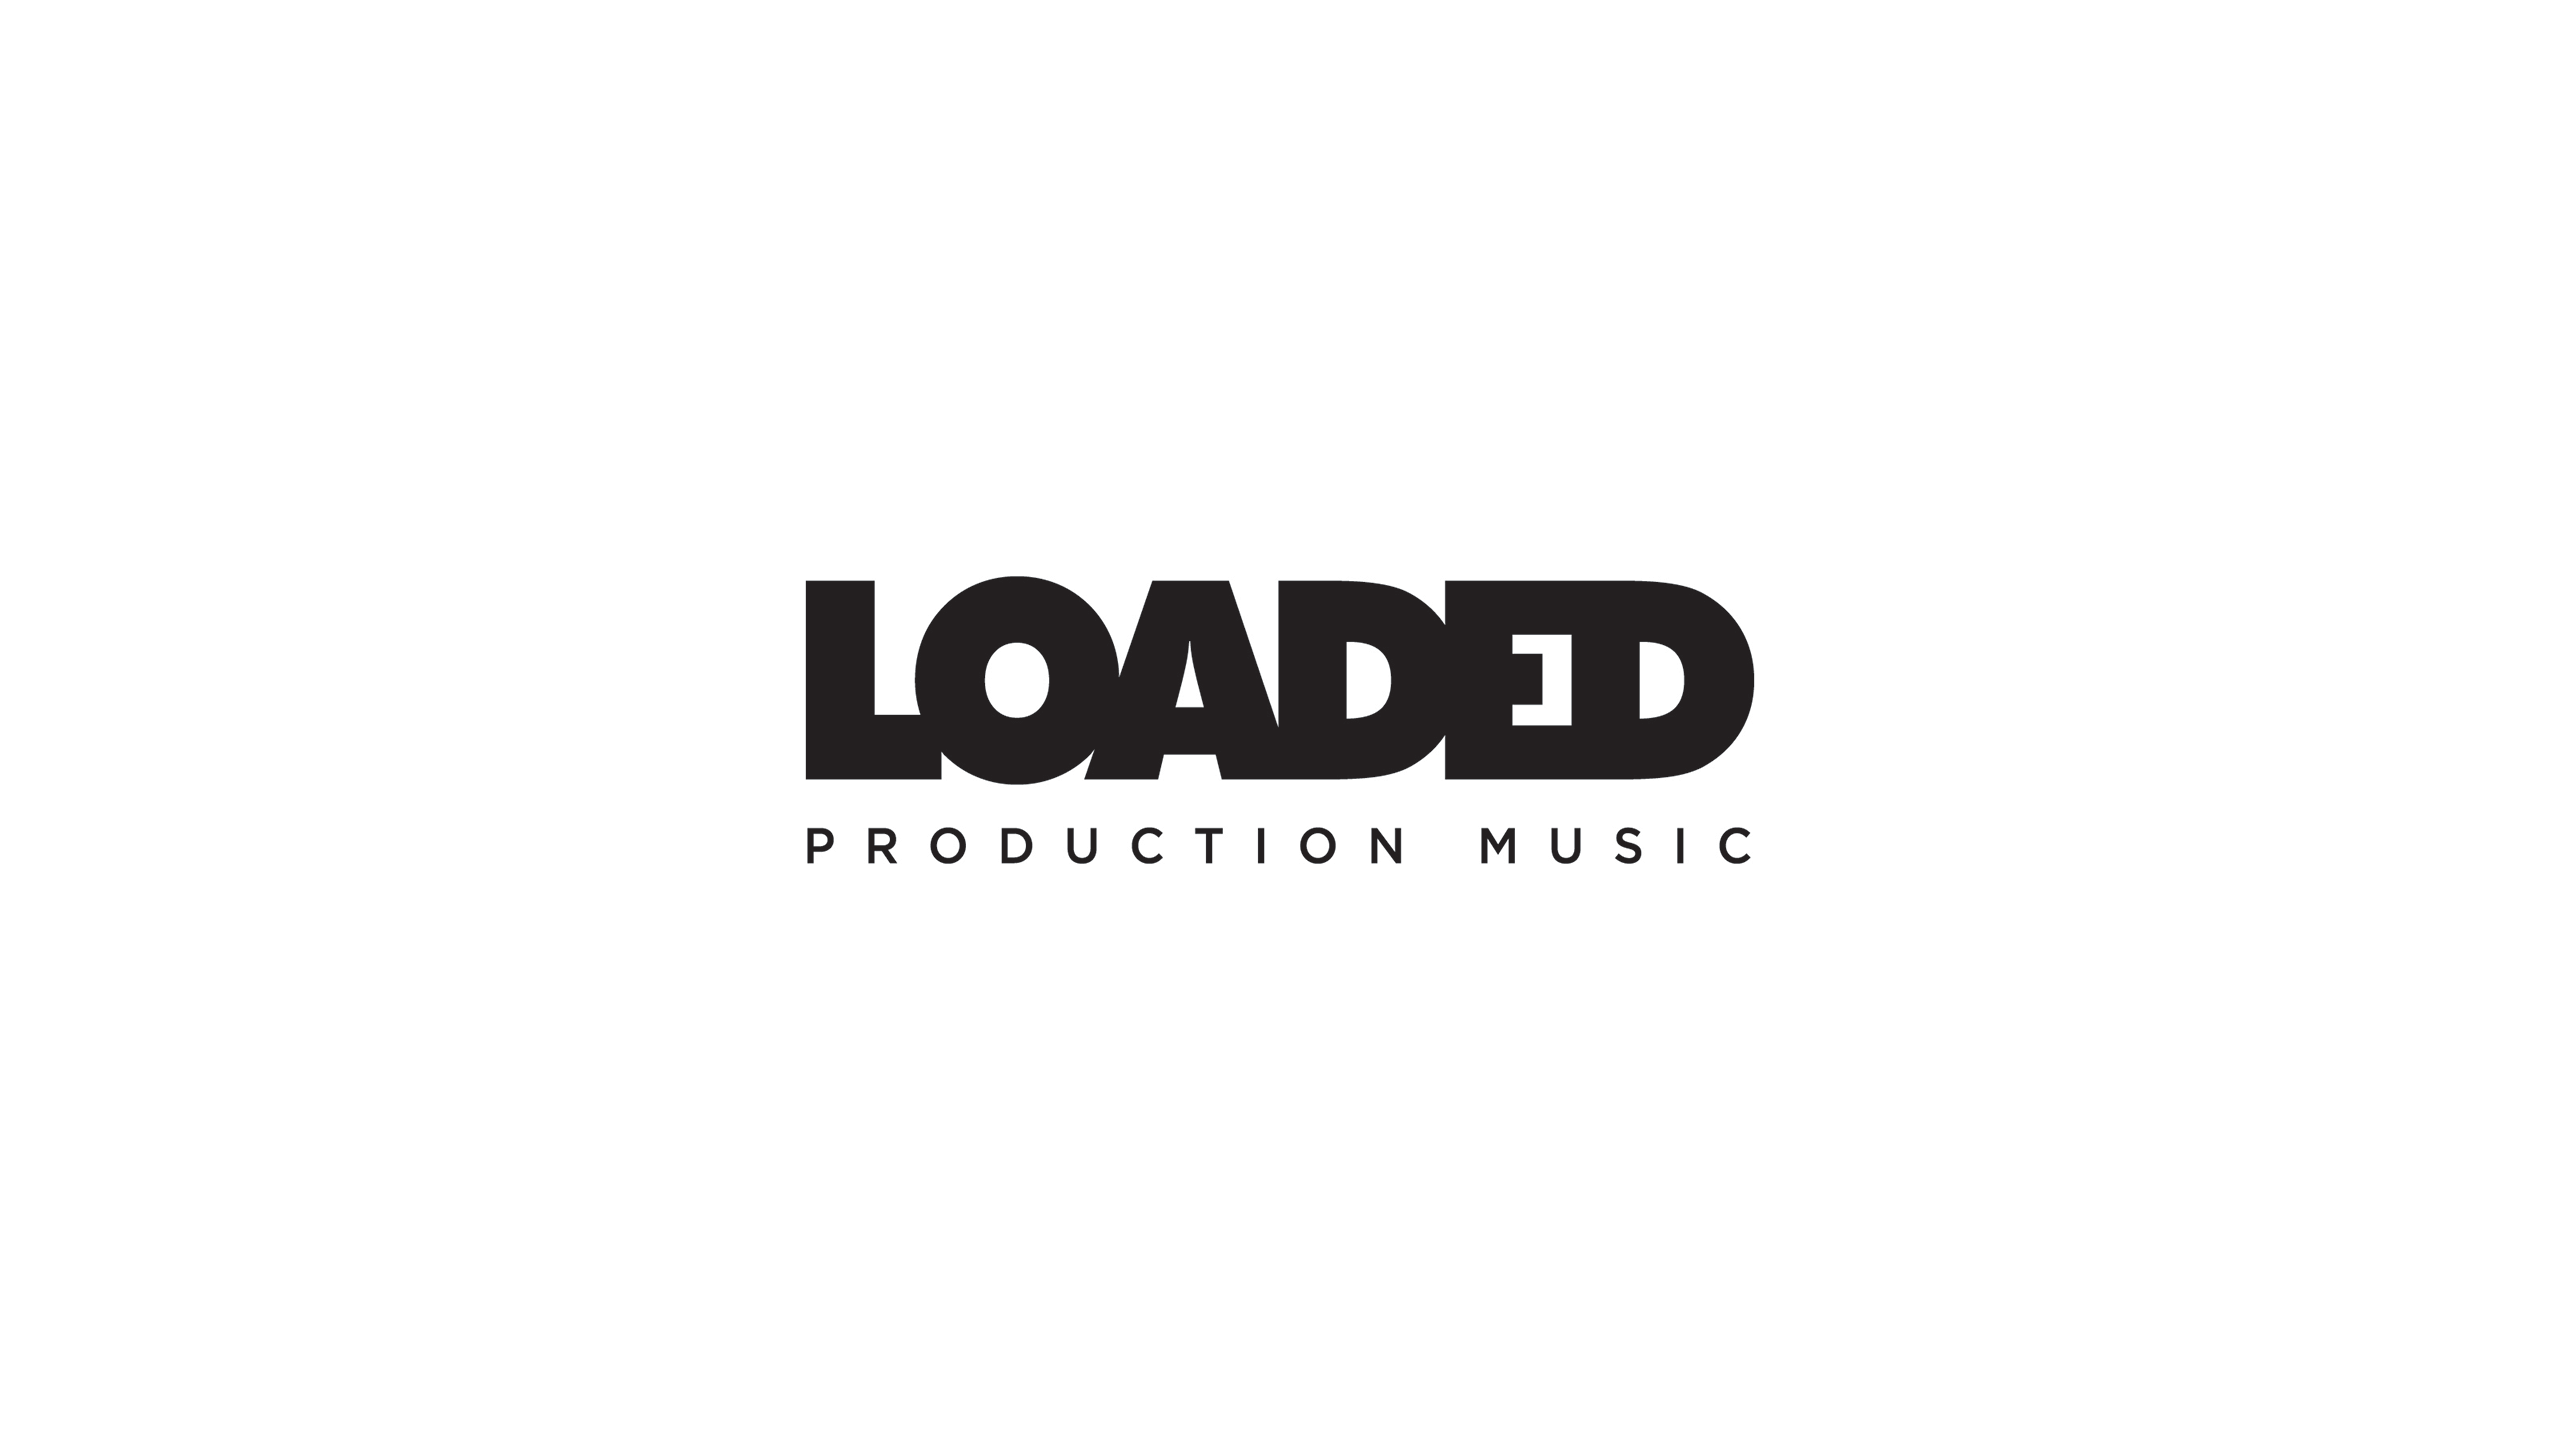 Loaded production logo